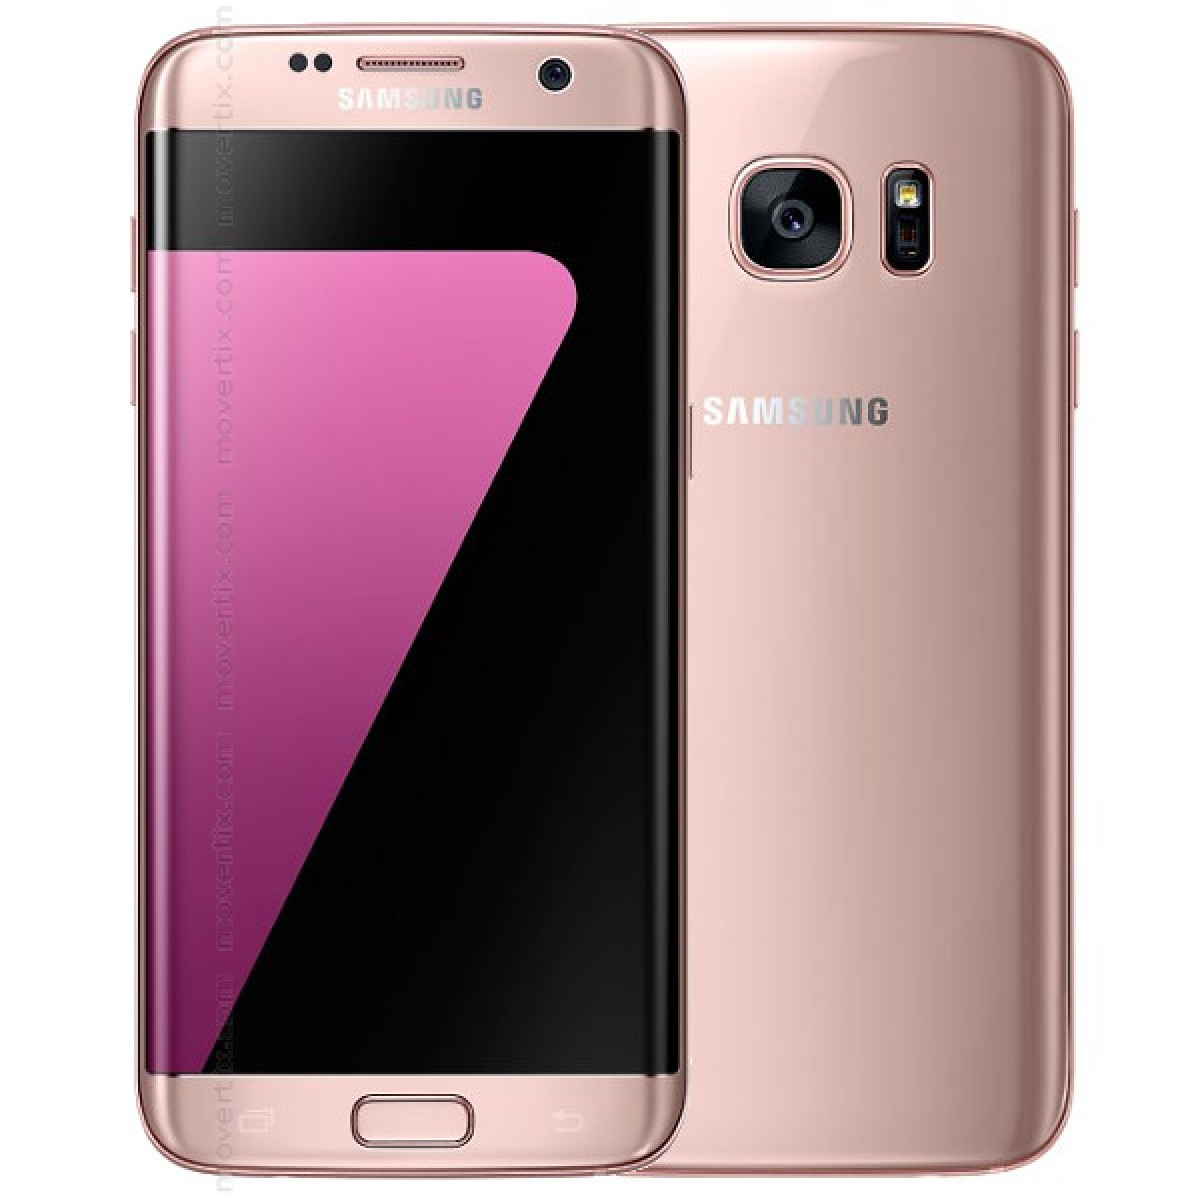 samsung galaxy s7 in ros gold mit 32gb g930f 8806088452814 movertix handy shop. Black Bedroom Furniture Sets. Home Design Ideas